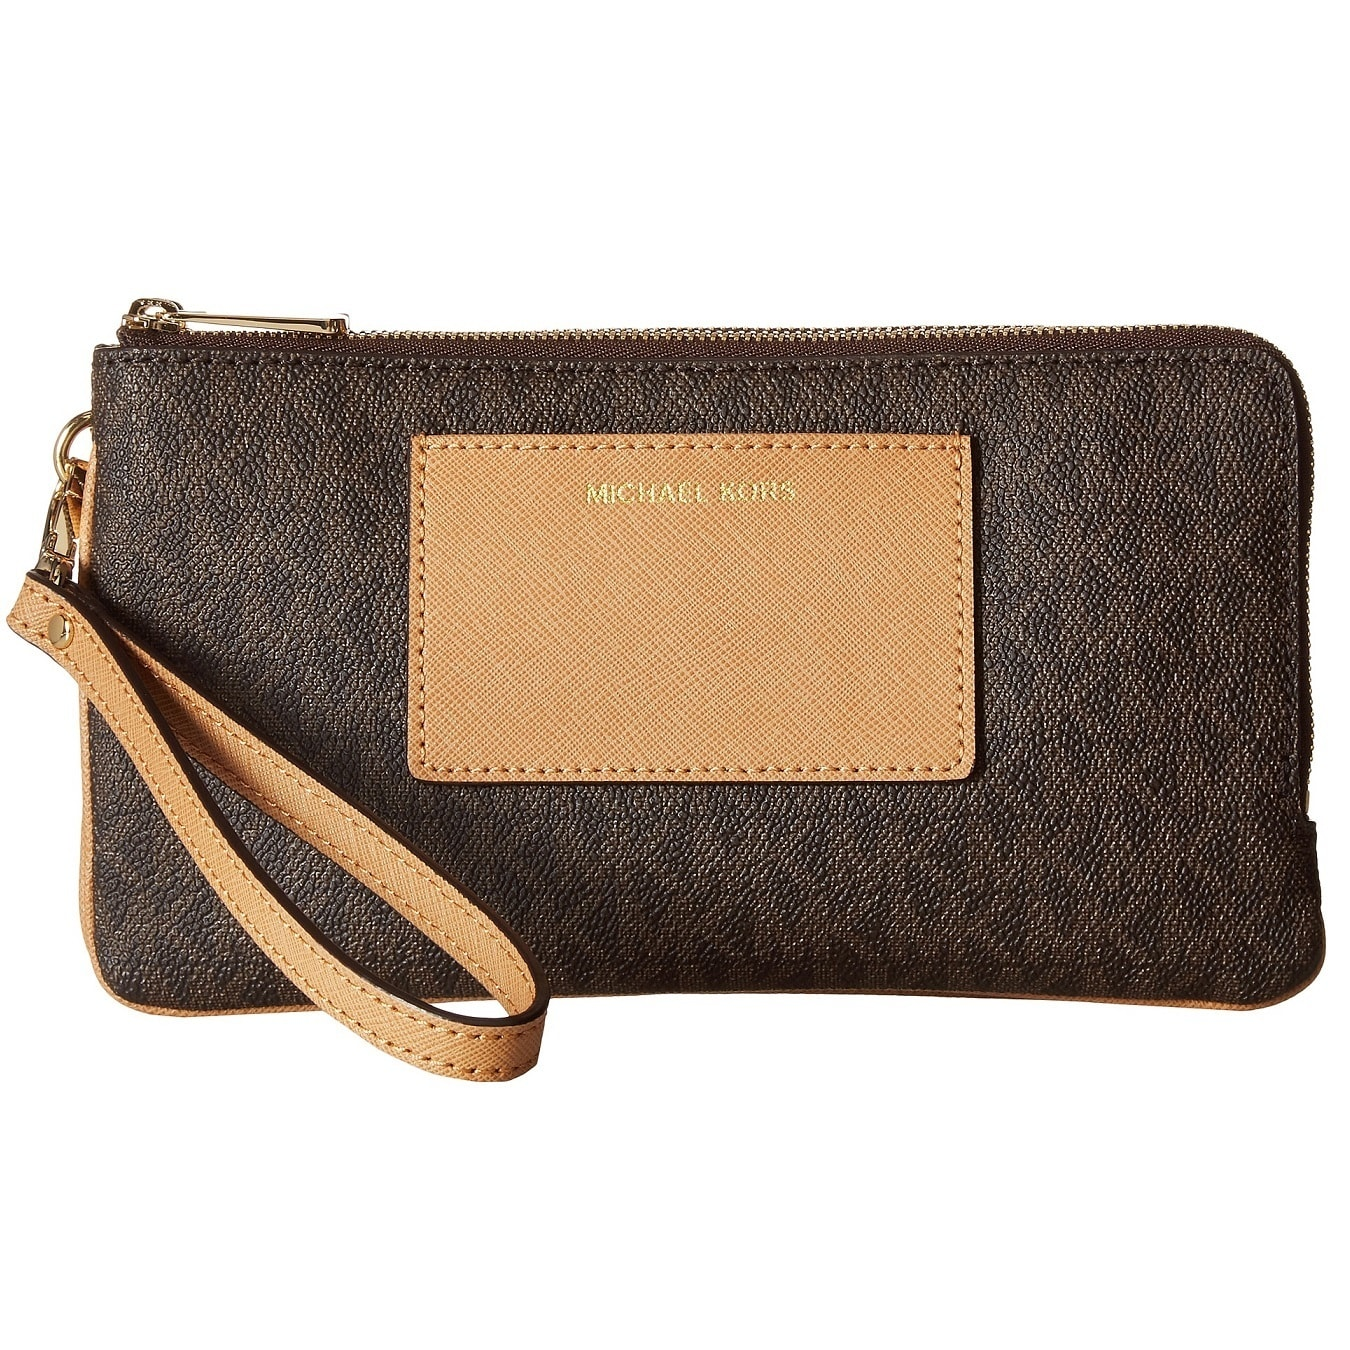 d69bb09aef9d Shop Michael Kors Large Brown Double Zip Wristlet with Pocket - On Sale - Free  Shipping Today - Overstock - 13343156